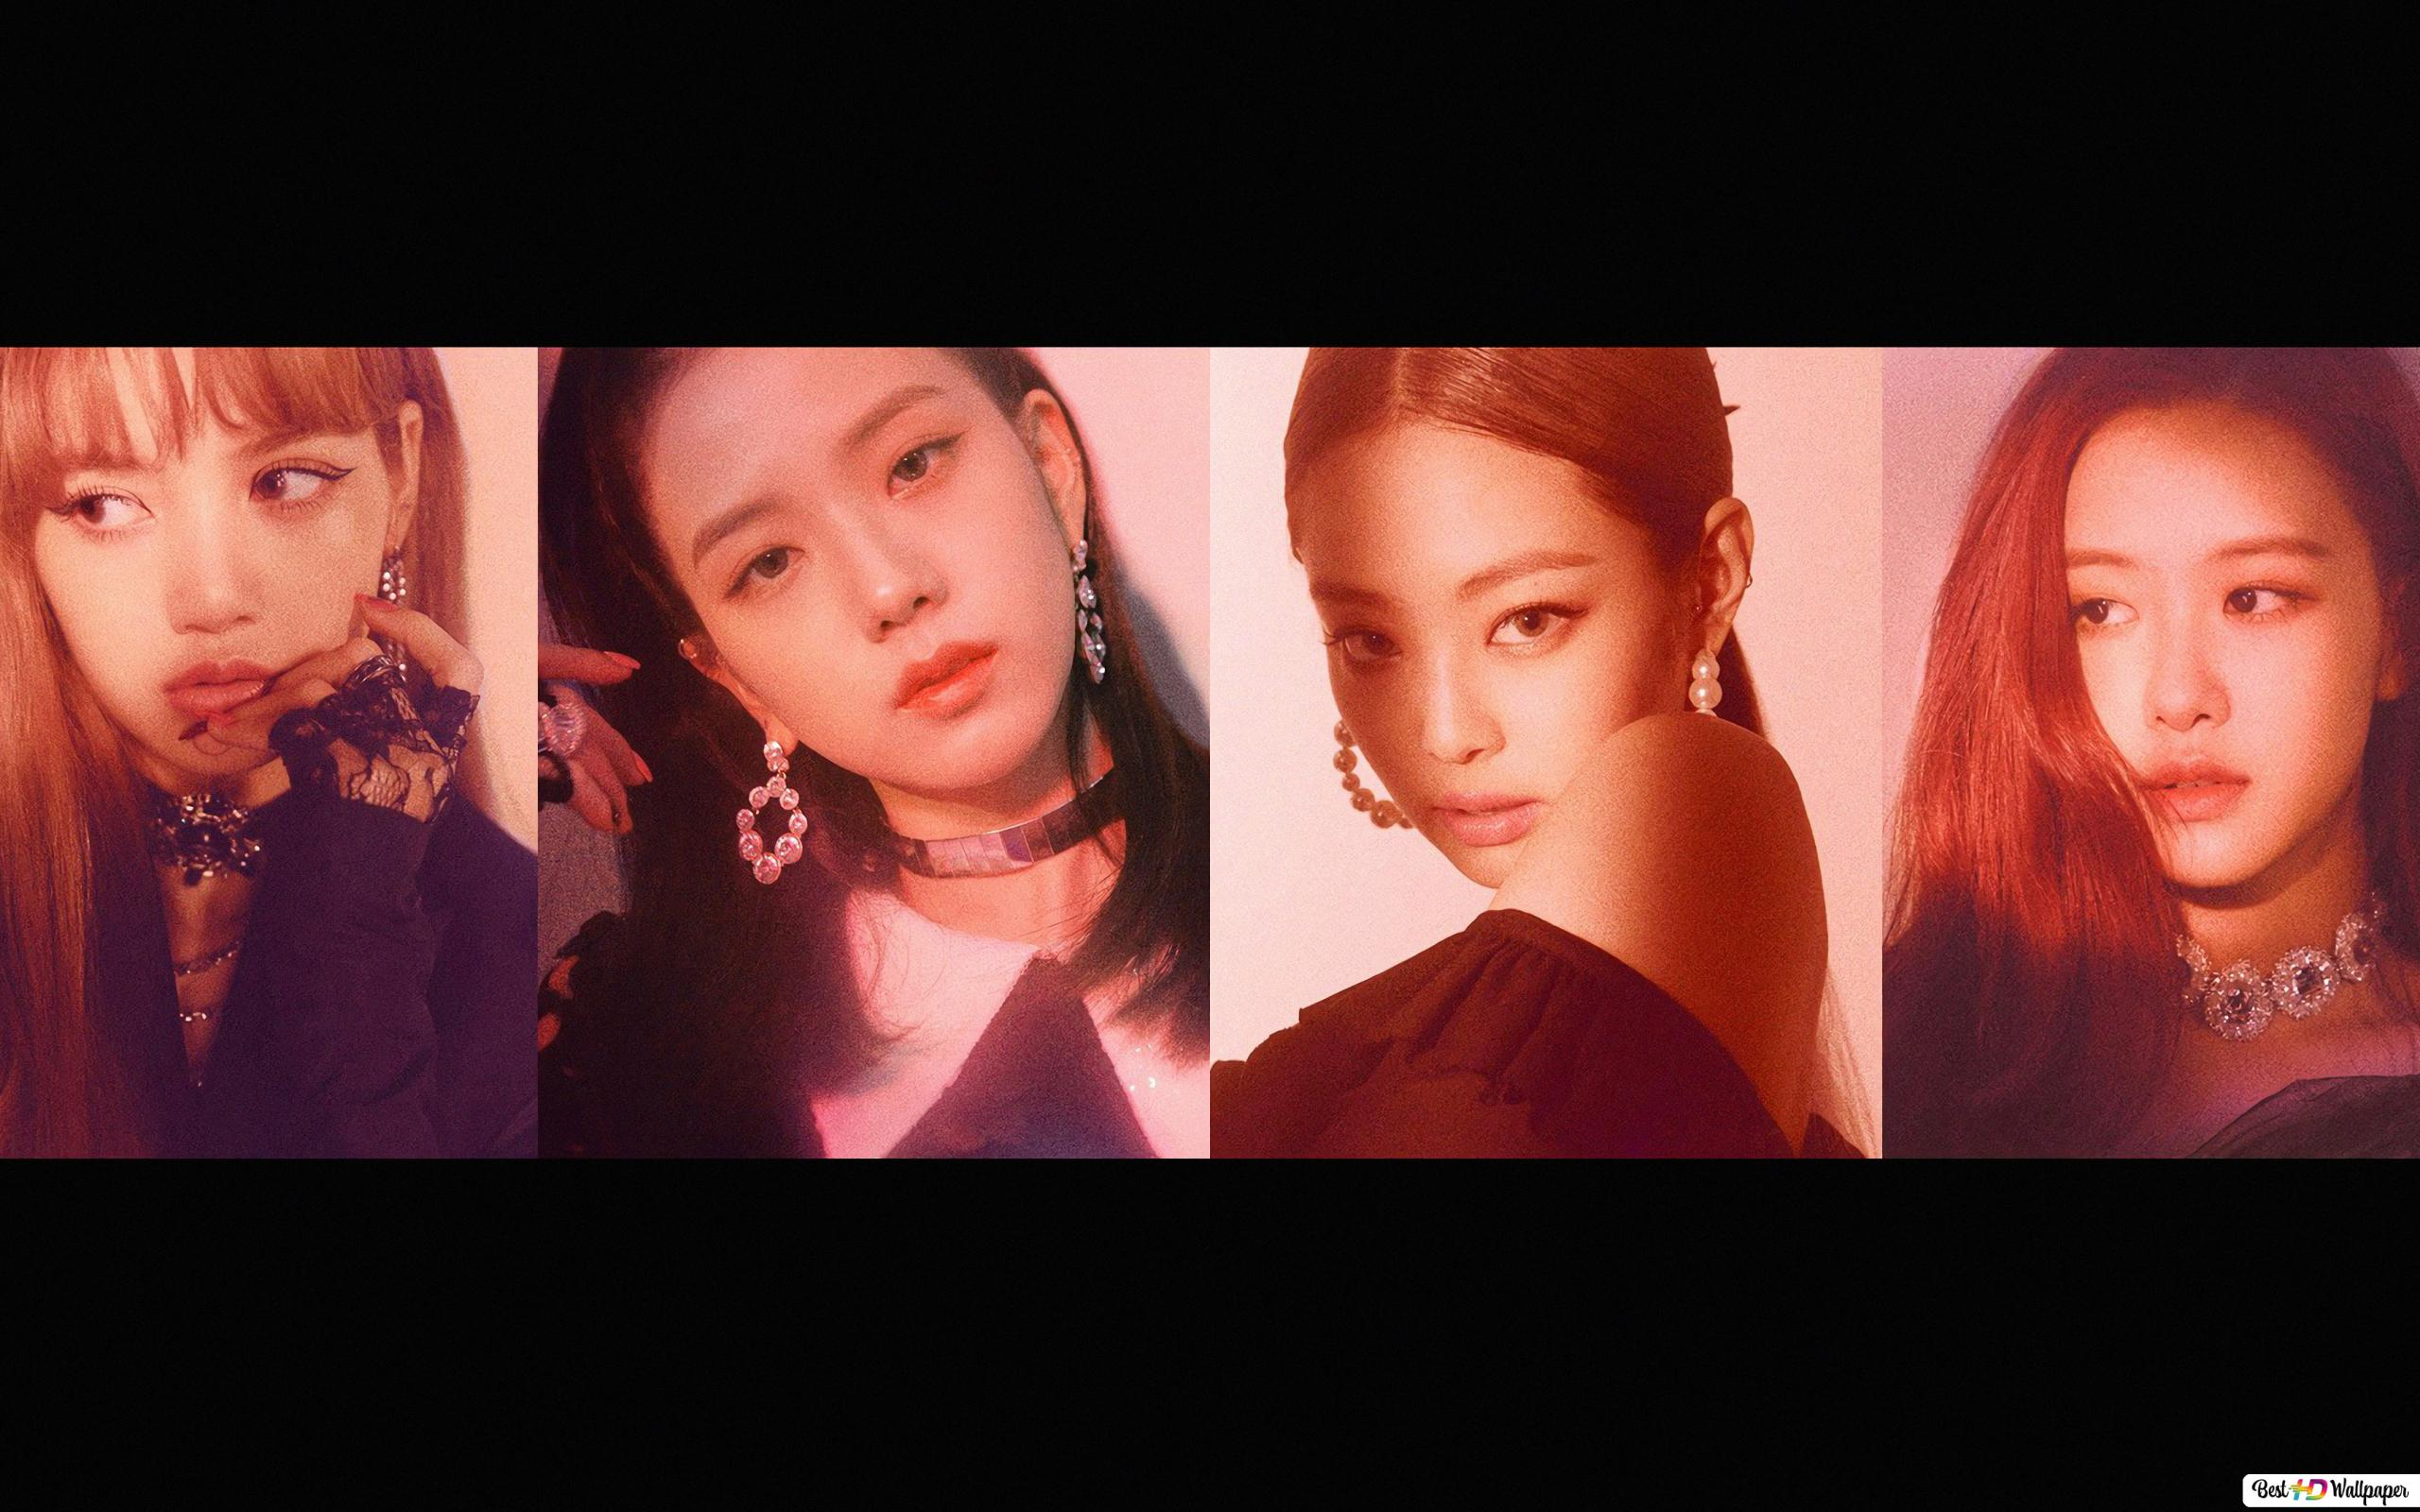 Blackpink S Members In Square Up Album Photoshoot Hd Wallpaper Download